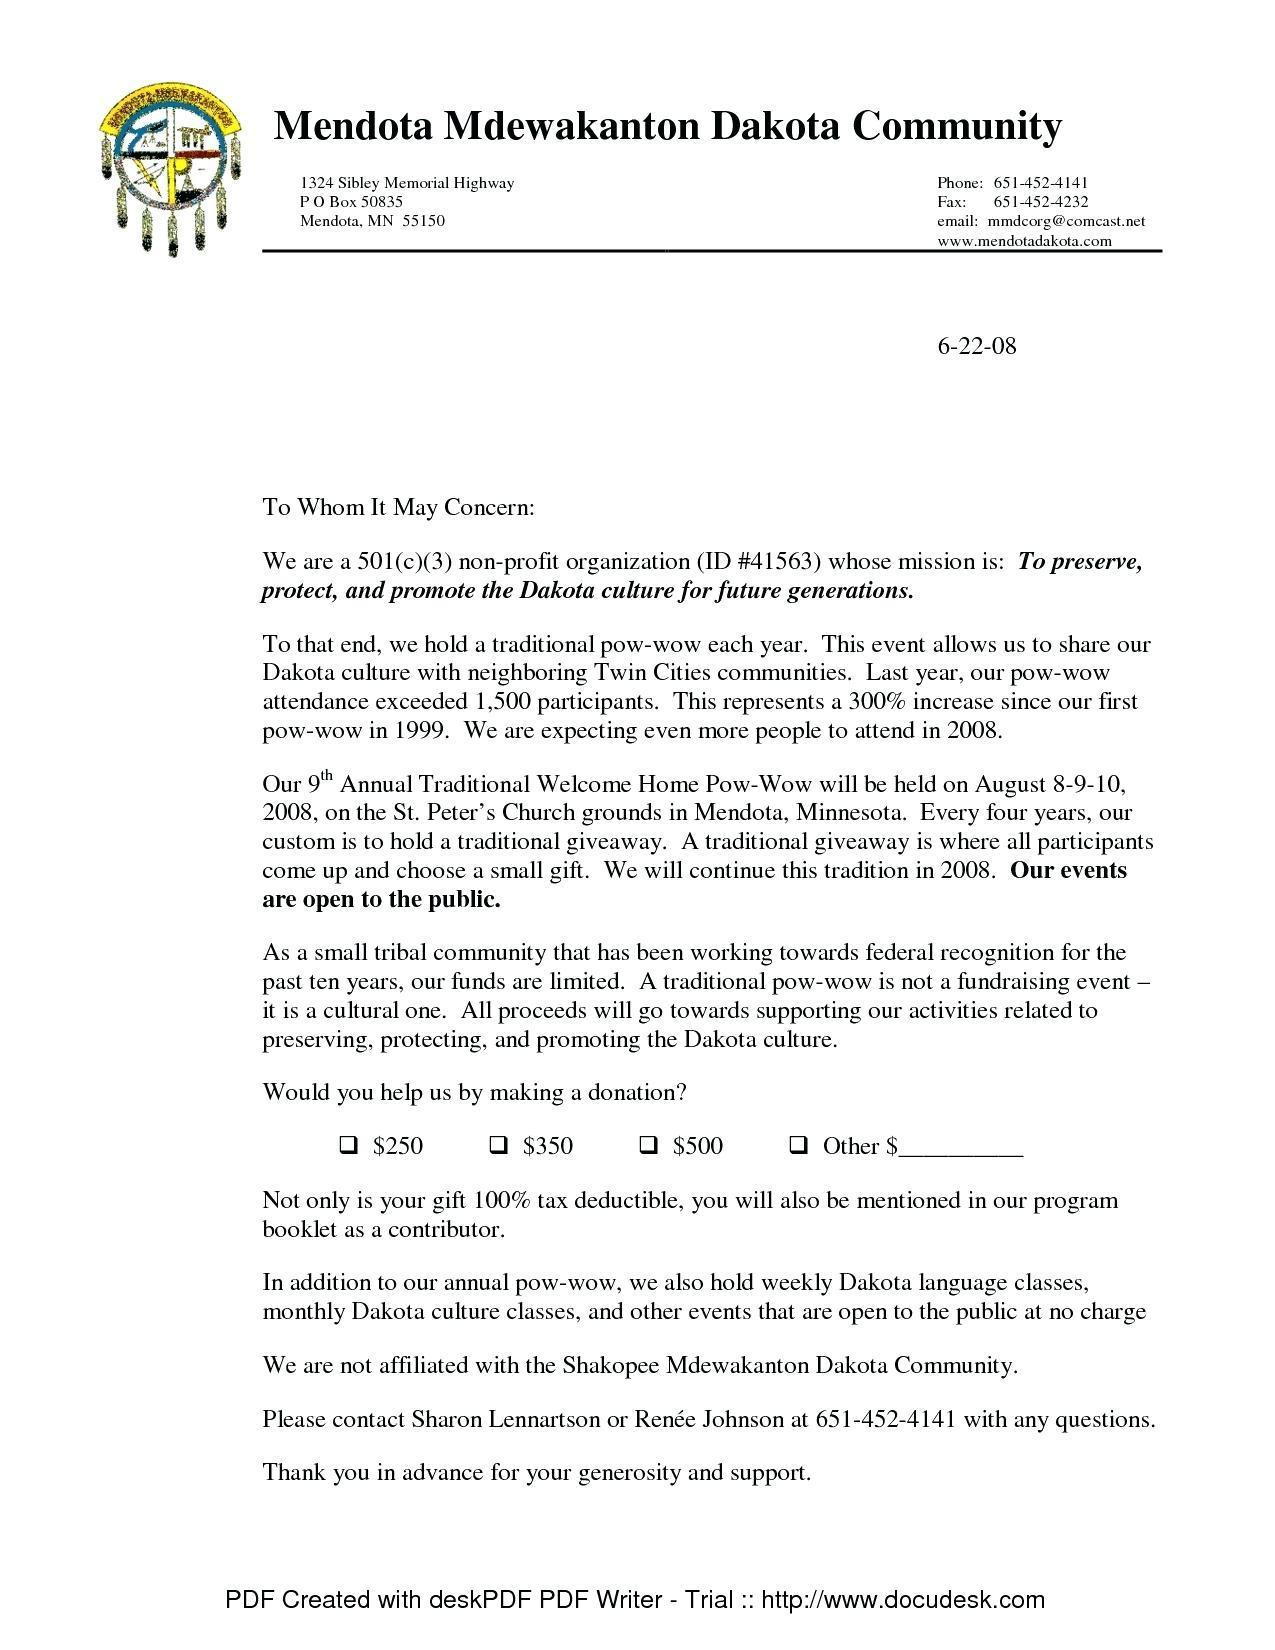 Bylaws For Non Profit Organization Template Canada